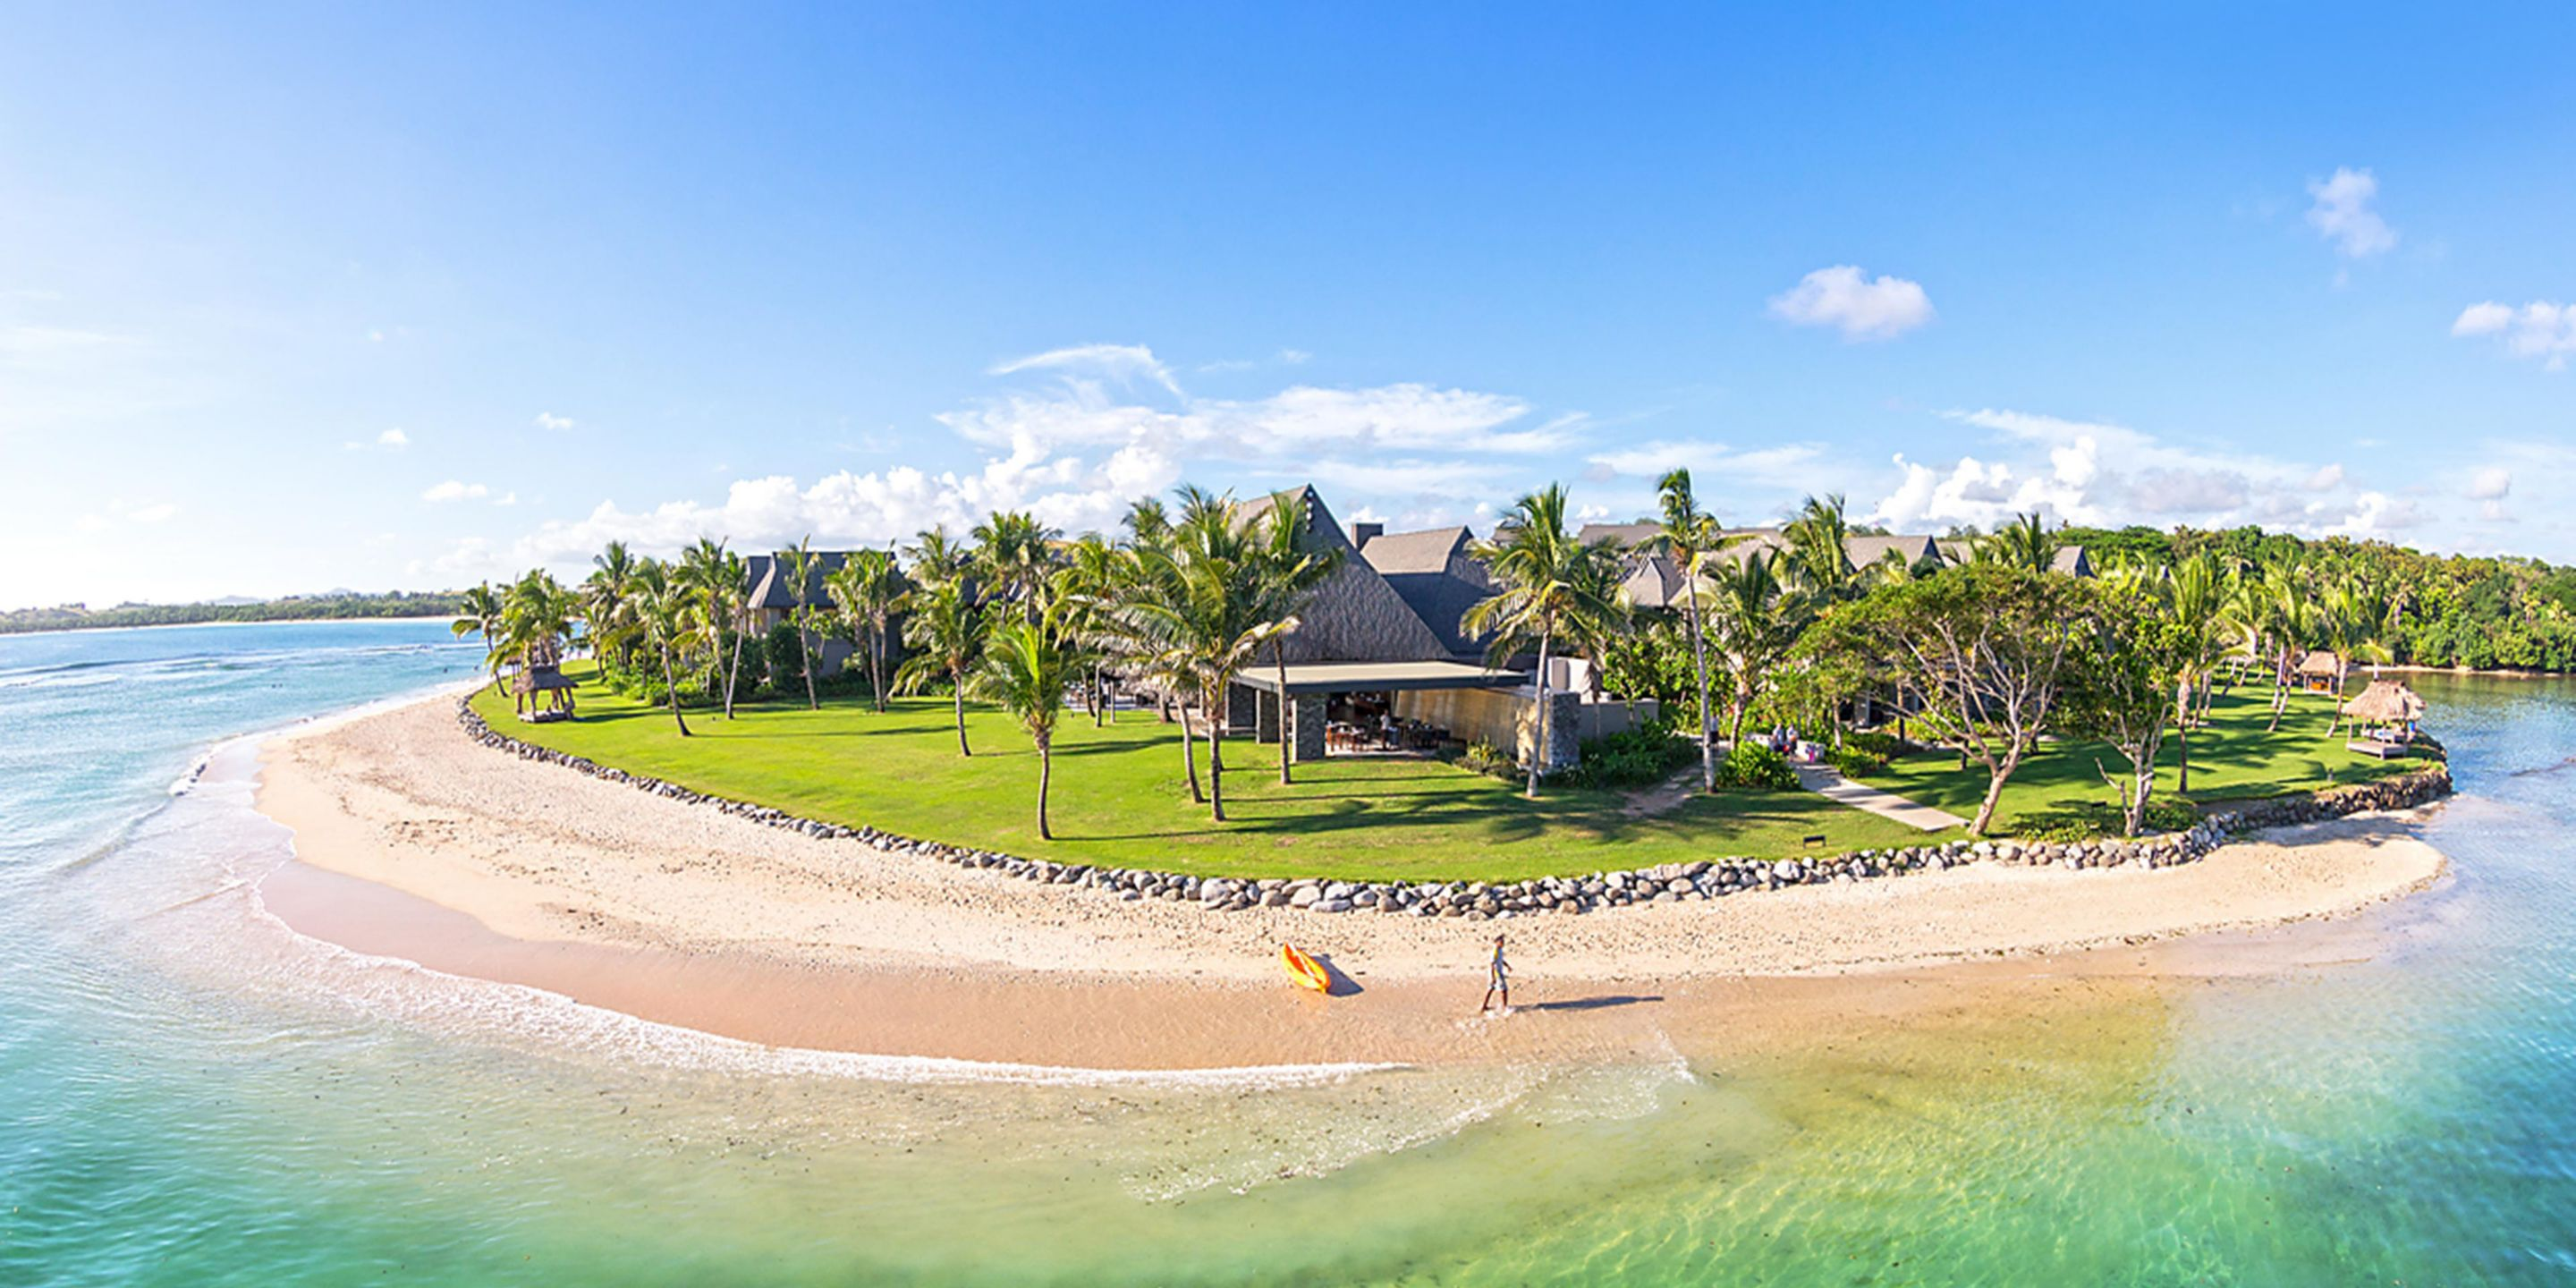 Cardholders can redeem their IHG credit card annual free night at the InterContinental Hotels: Fiji Golf Resort & Spa.